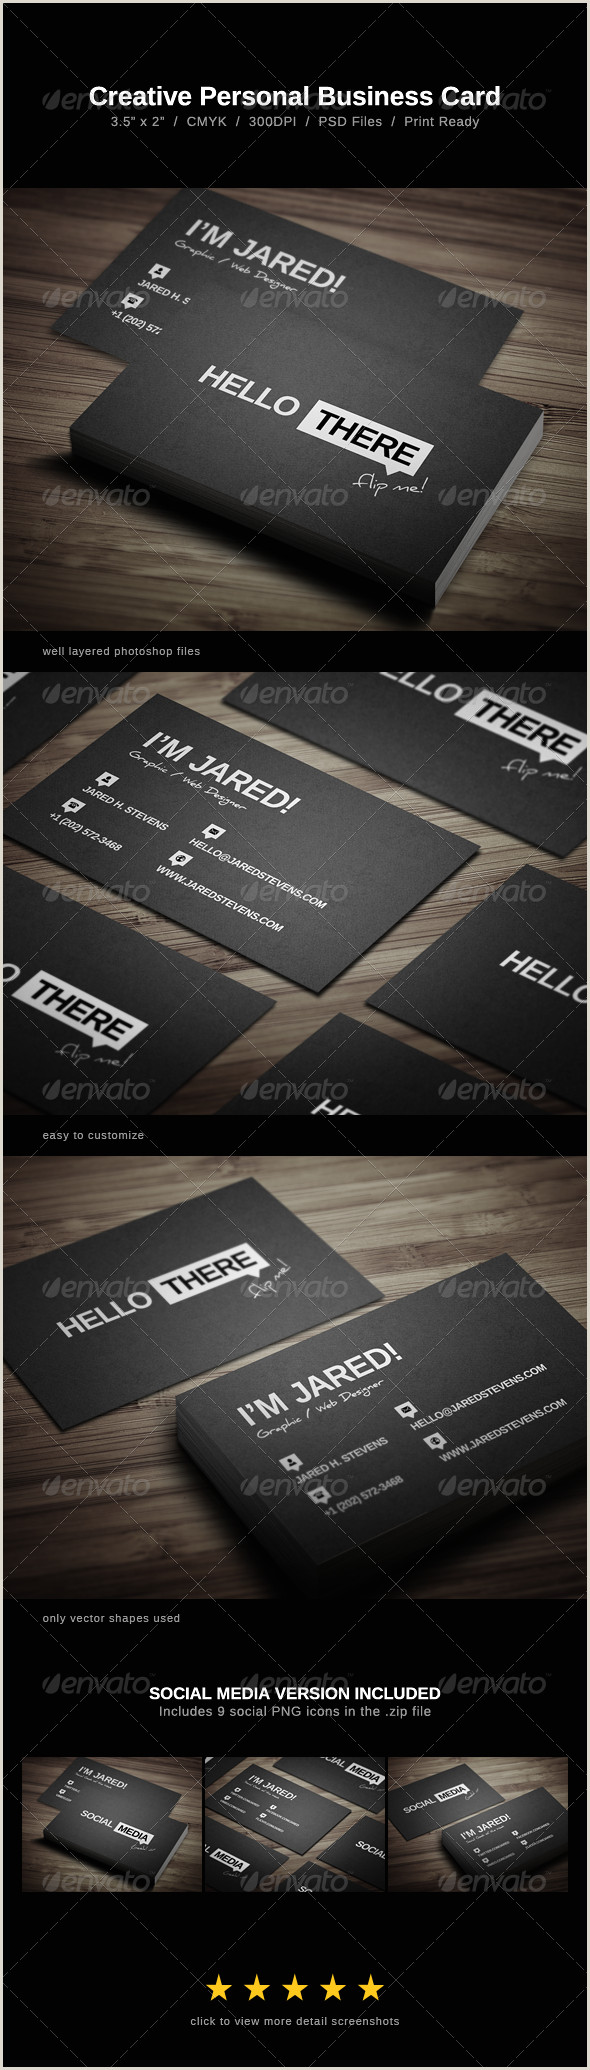 Personal Business Cards Design Personal Business Card Templates & Designs From Graphicriver